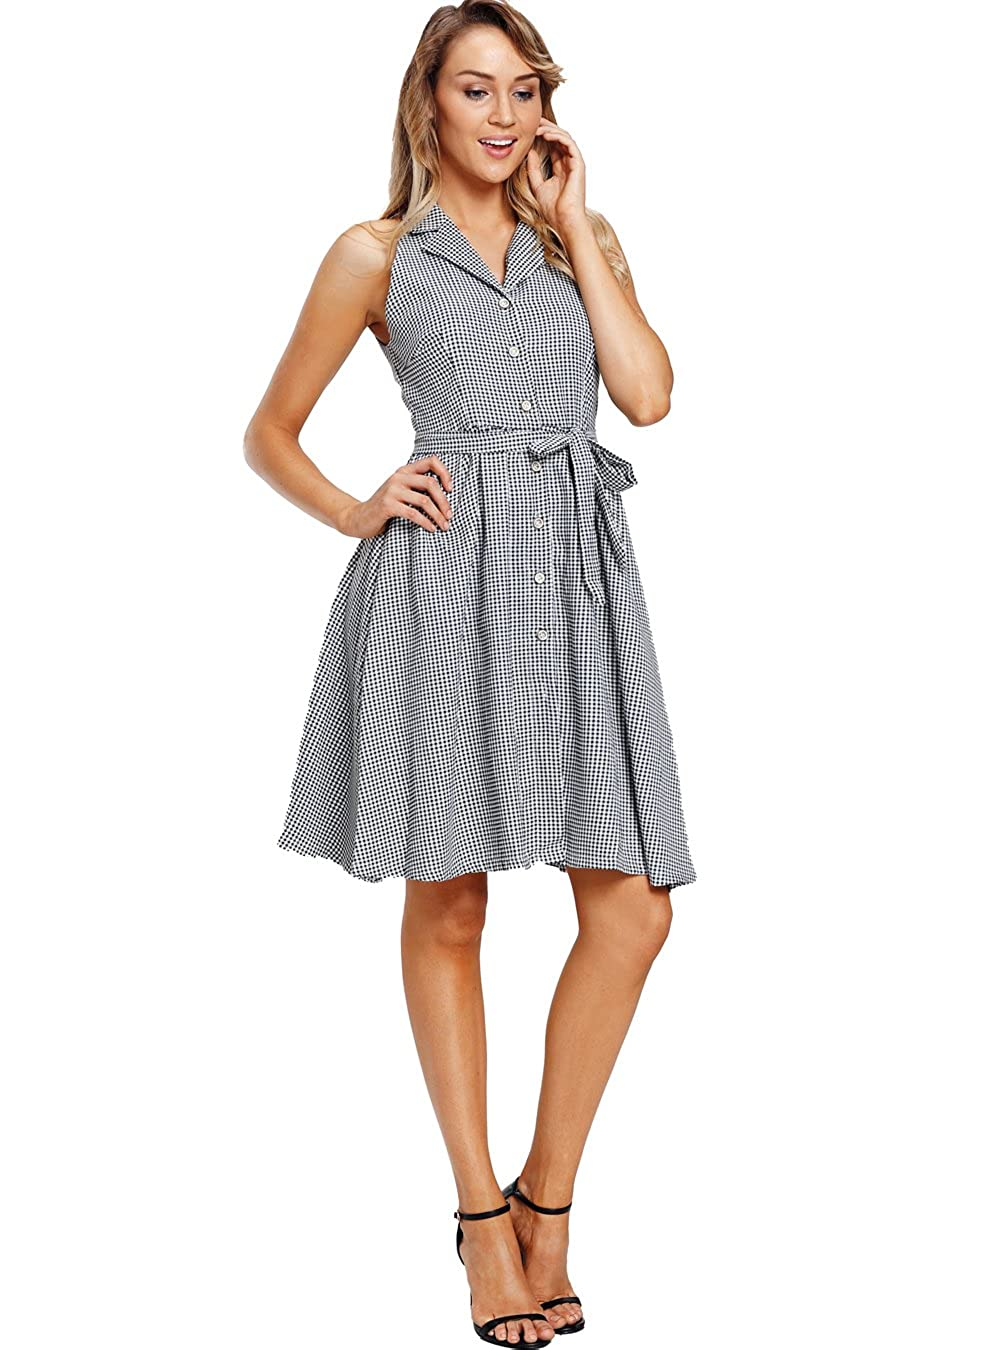 6779a68c90 PYL Women s Sleeveless Button Up Houndstooth Vintage Dress at Amazon  Women s Clothing store